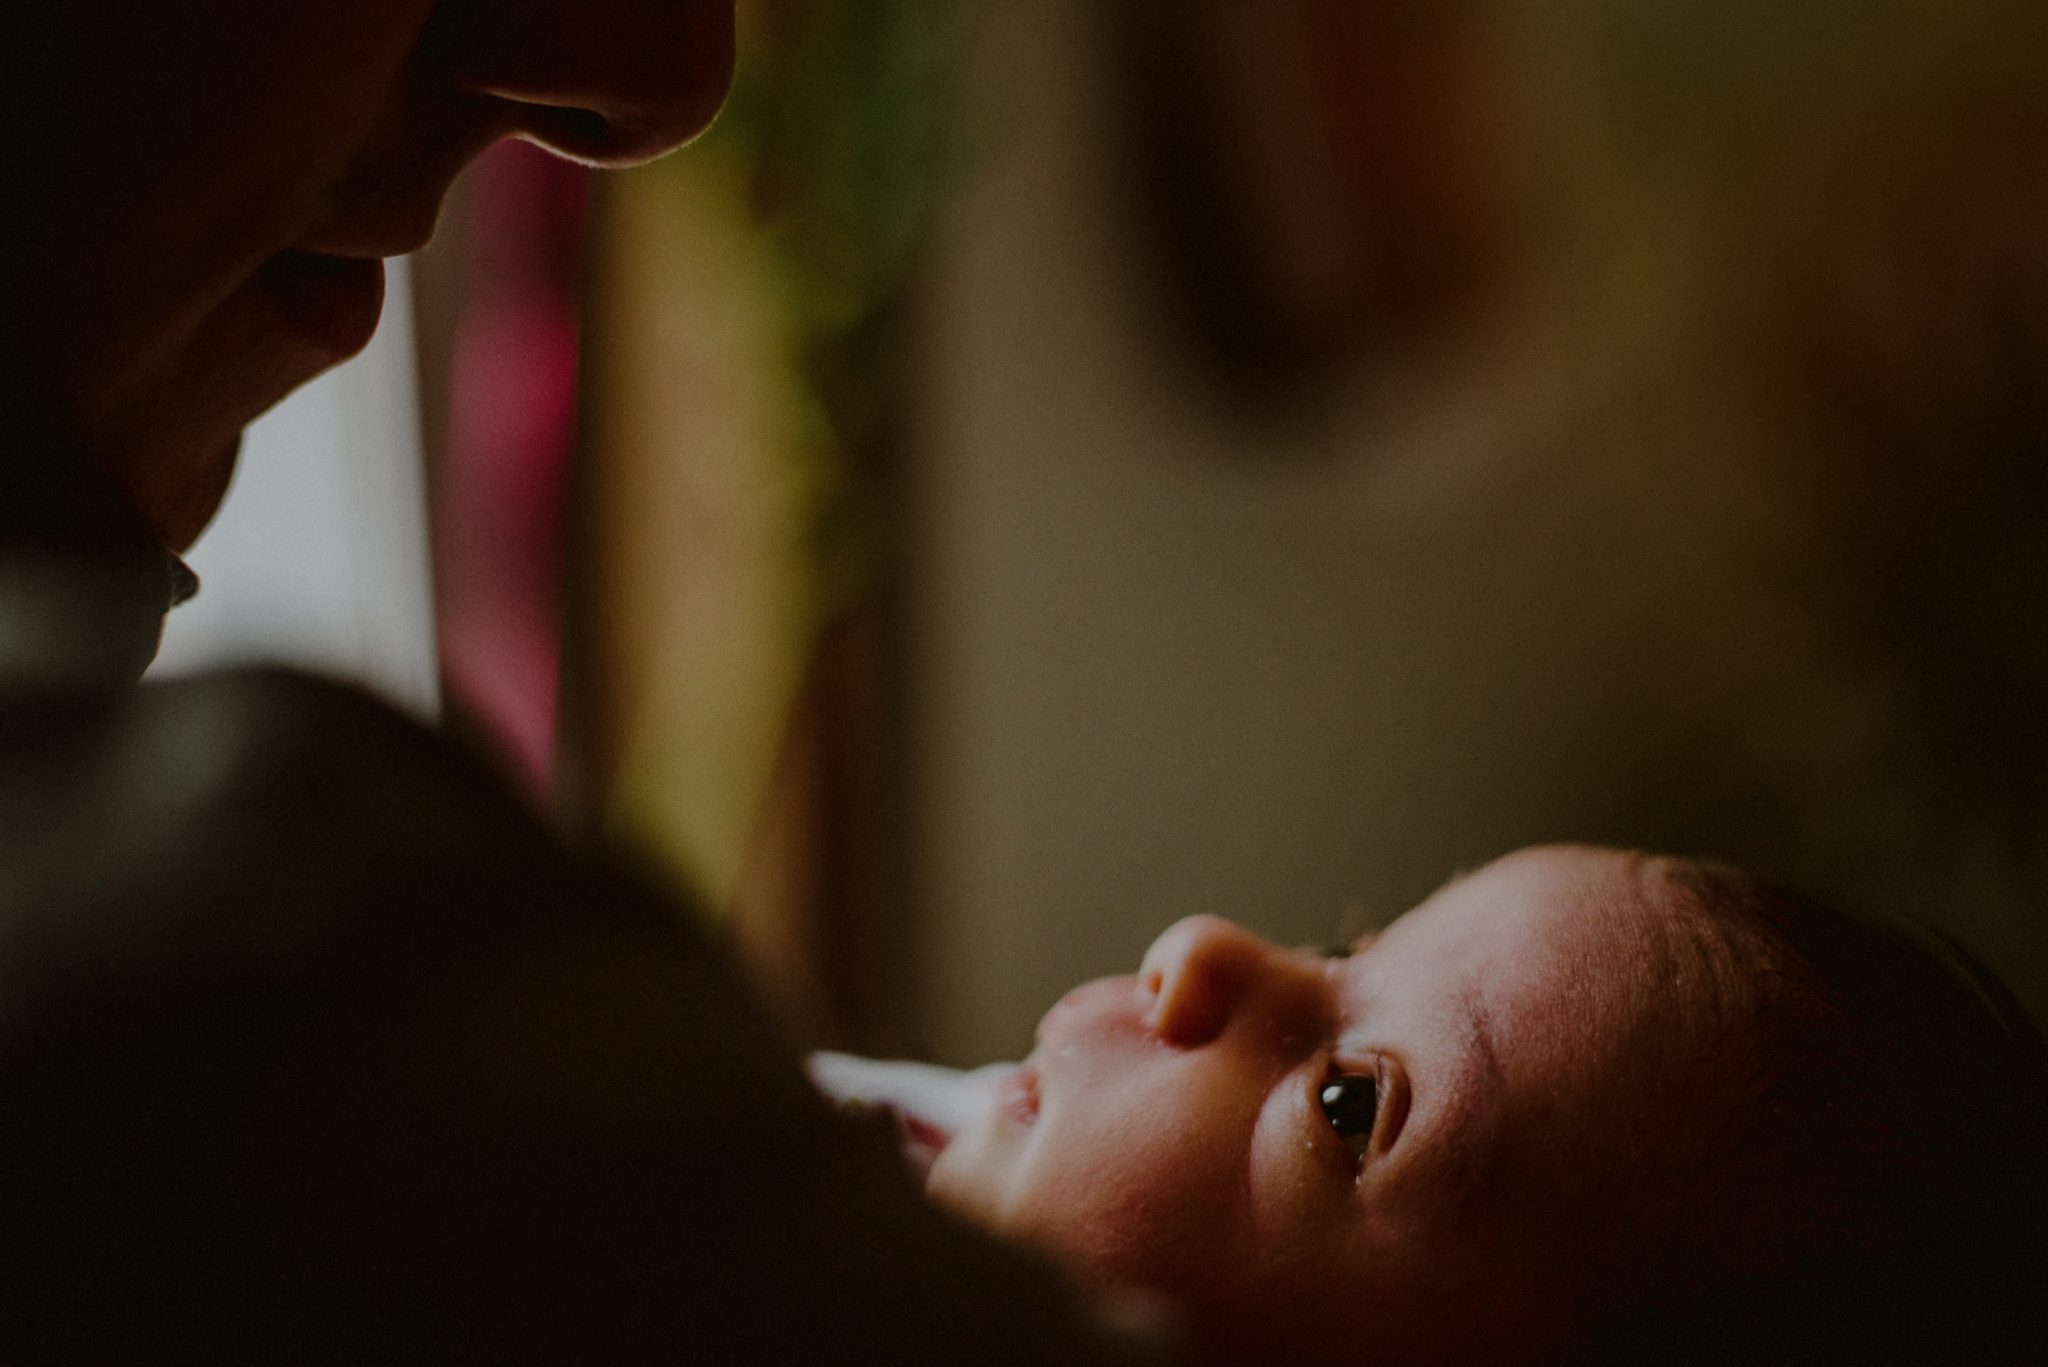 newborn baby tenderly looking up at father